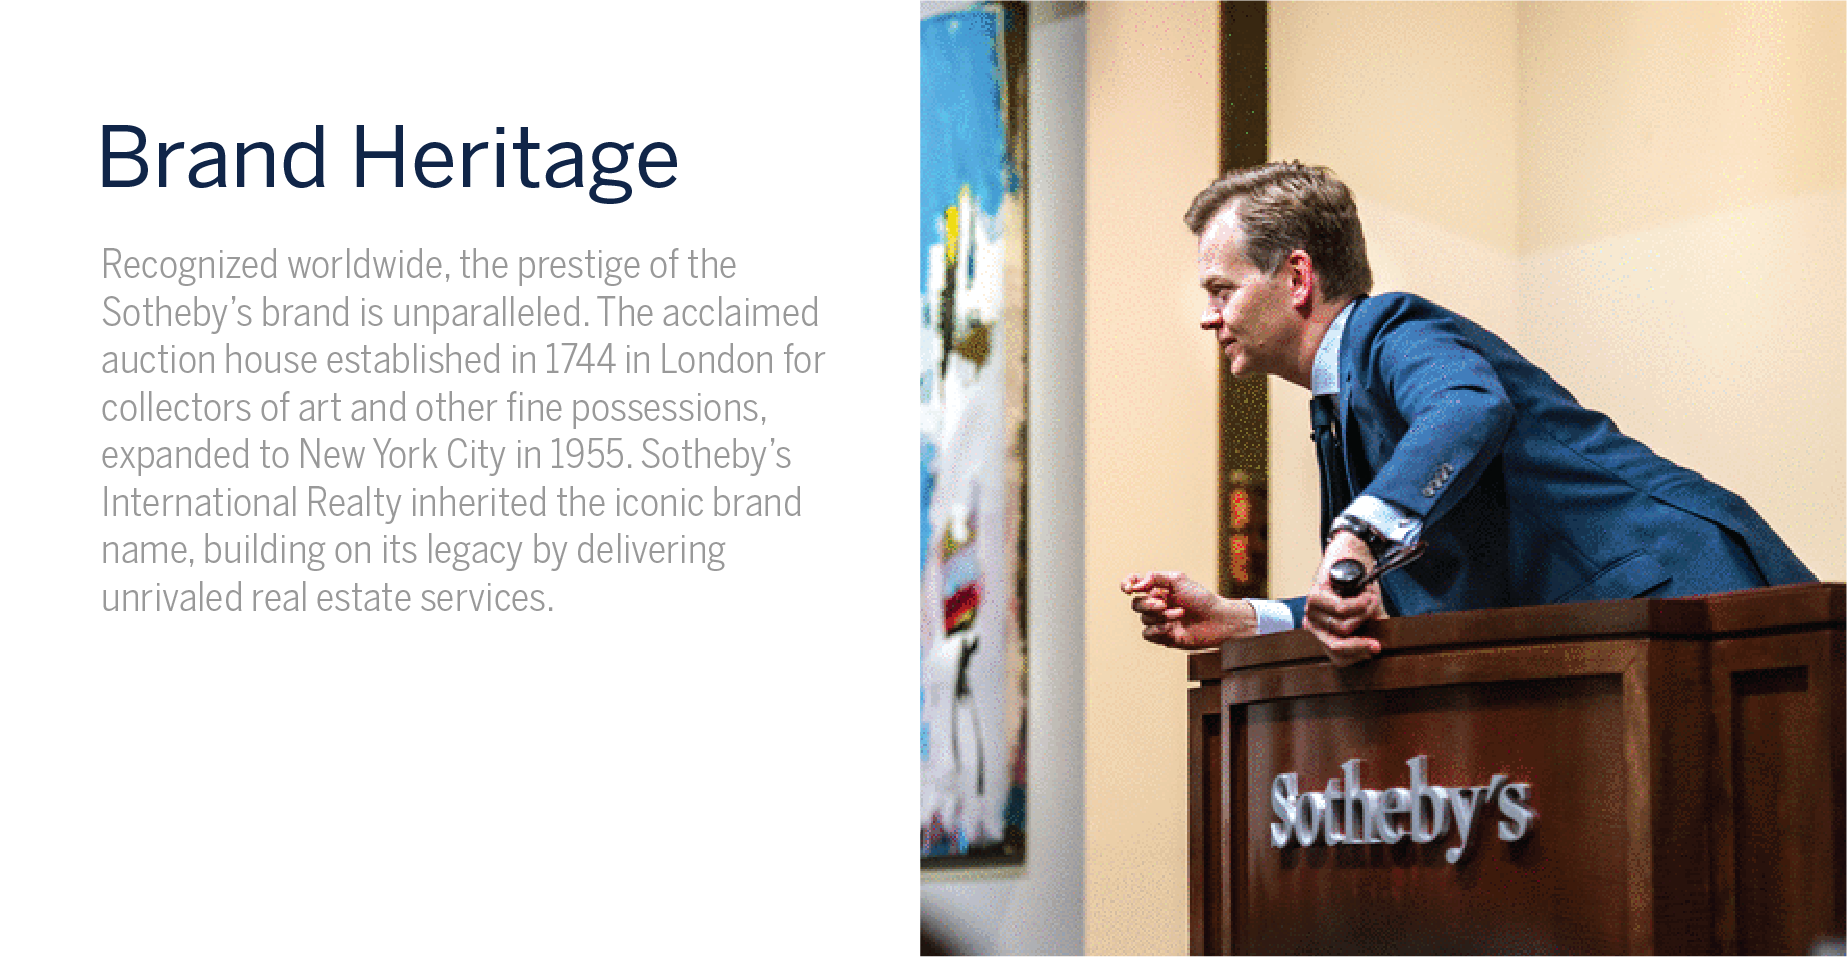 Brand Heritage - Recognized worldwide, the prestige of the Sotheby's brand is unparalleled. The acclaimed auction house established in 1744 in london for collectors of art and other fine possessions, expanded to New York City in 1955. Sotheby's International Realty inherited the iconic brand name, building on its legacy by delivering unrivaled real estate services.